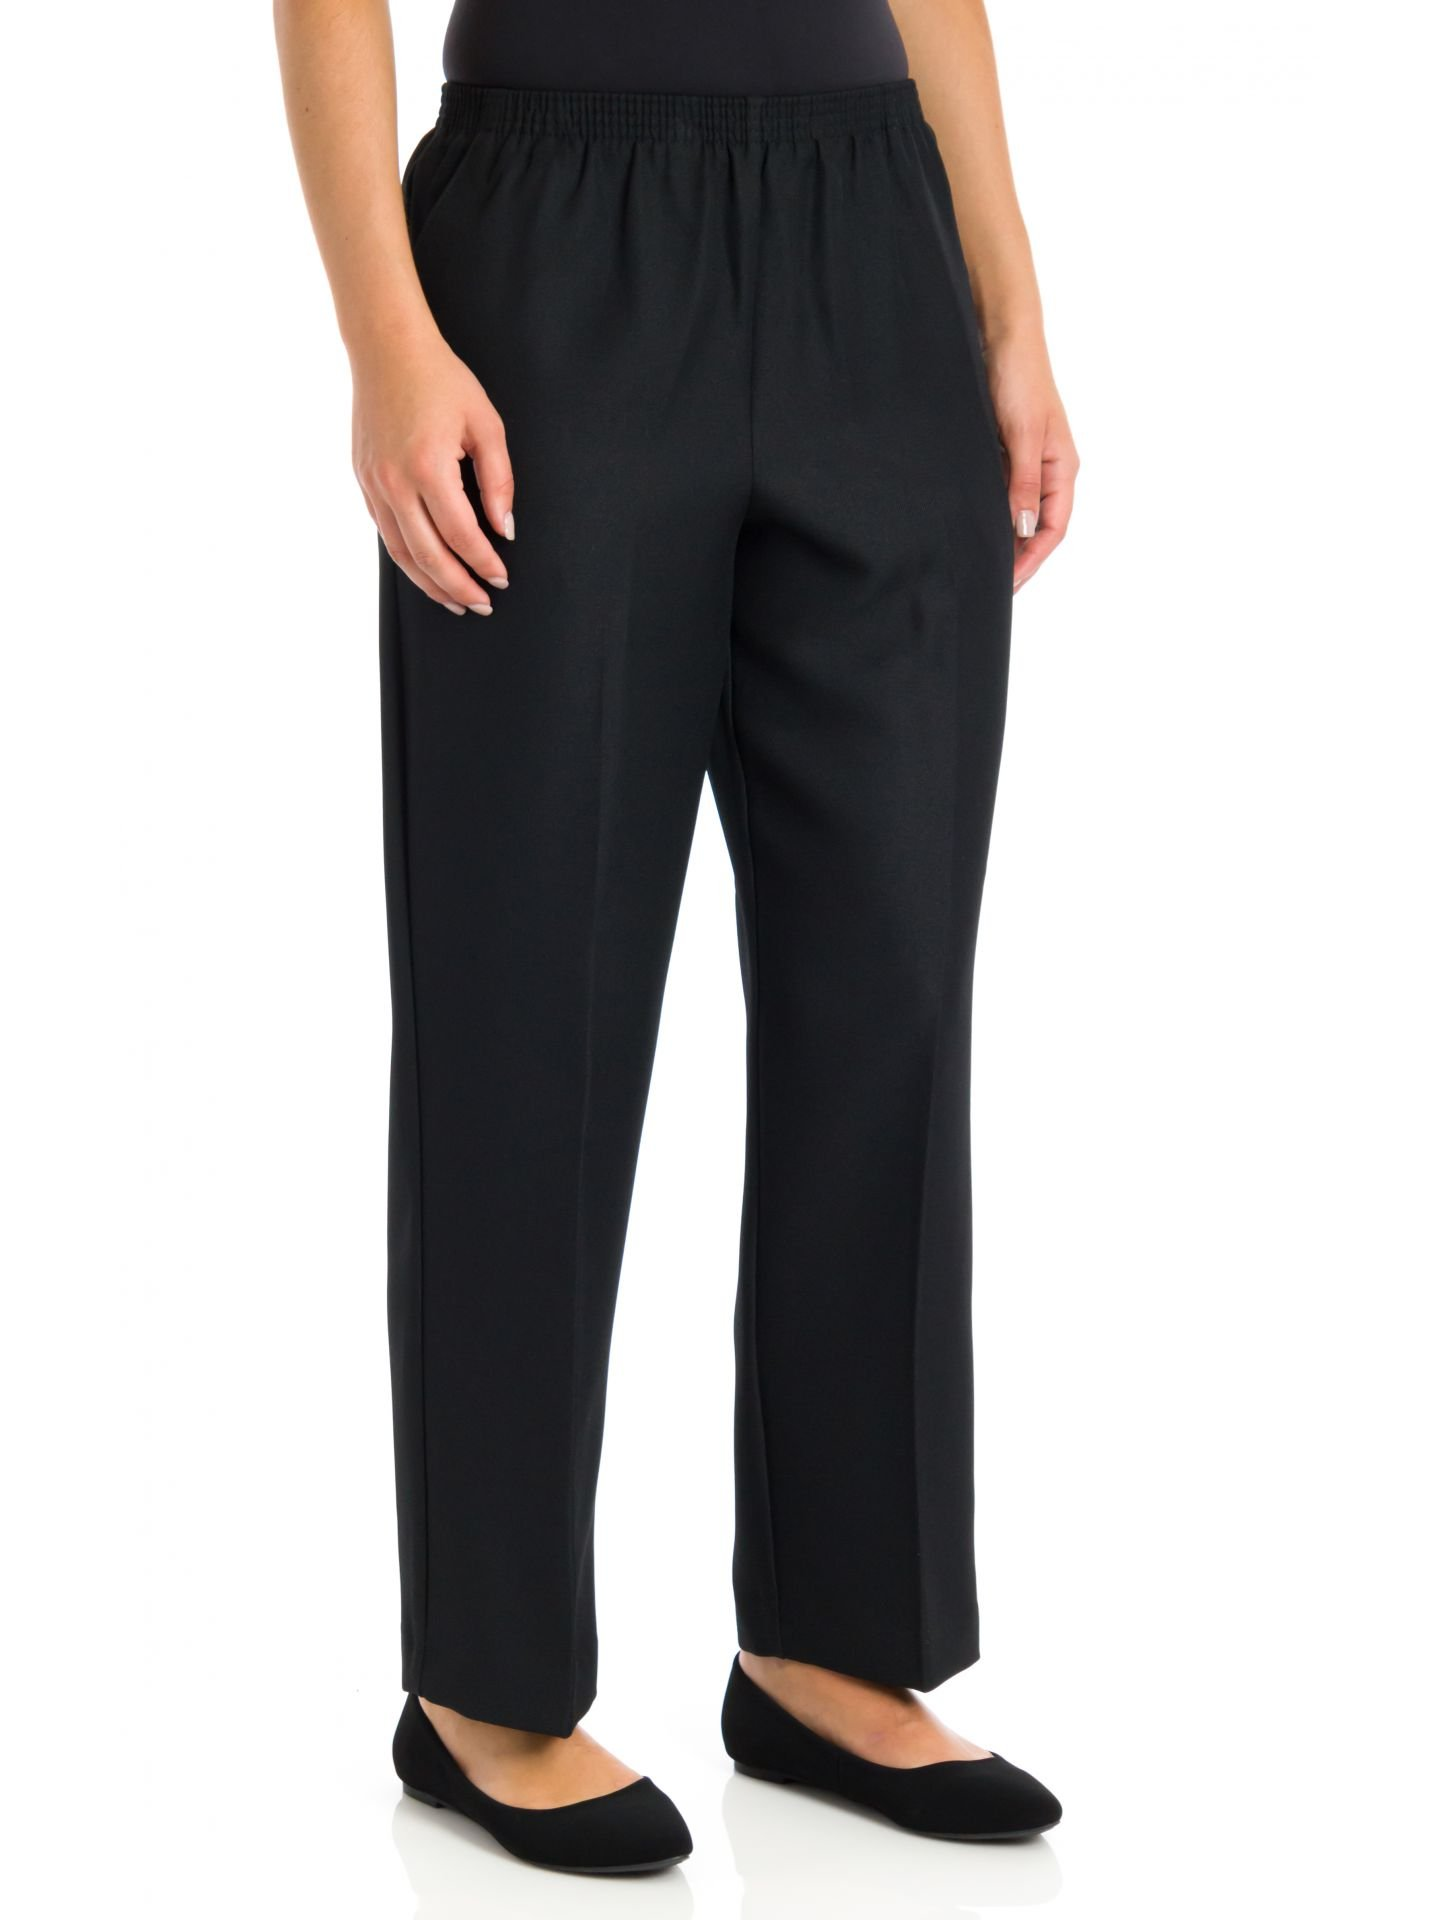 Alfred Dunner Petite Basic Polyester Pull-On Pants 09300, Black, 18P